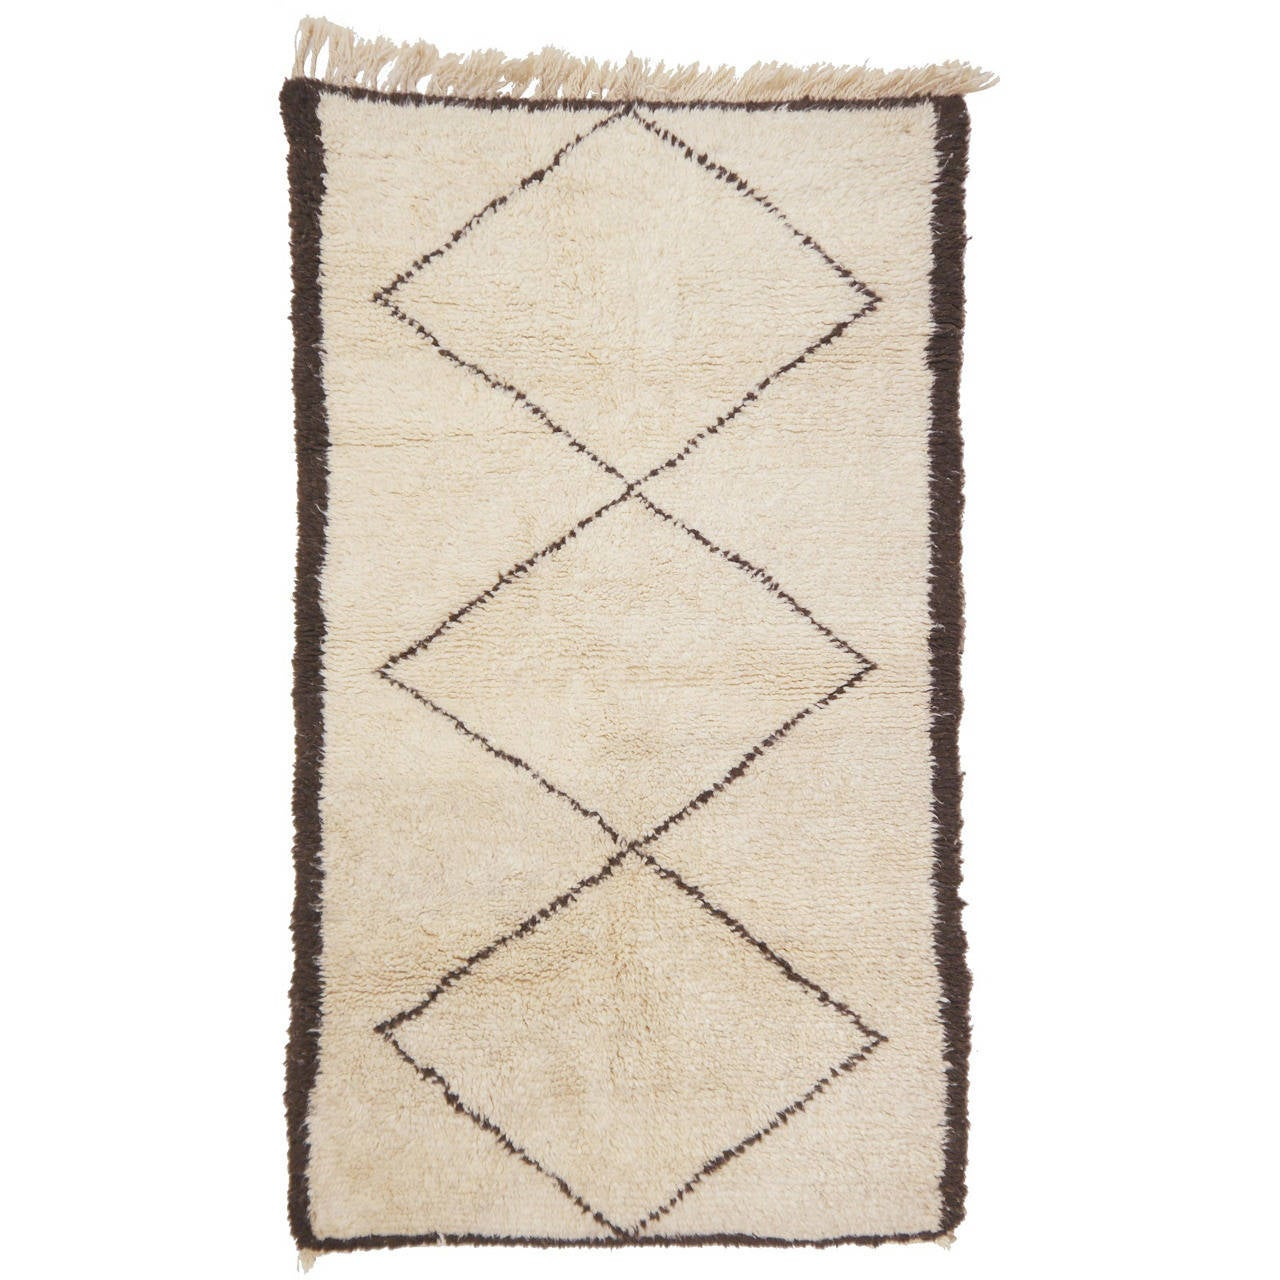 beni ourain moroccan small size rug at 1stdibs. Black Bedroom Furniture Sets. Home Design Ideas